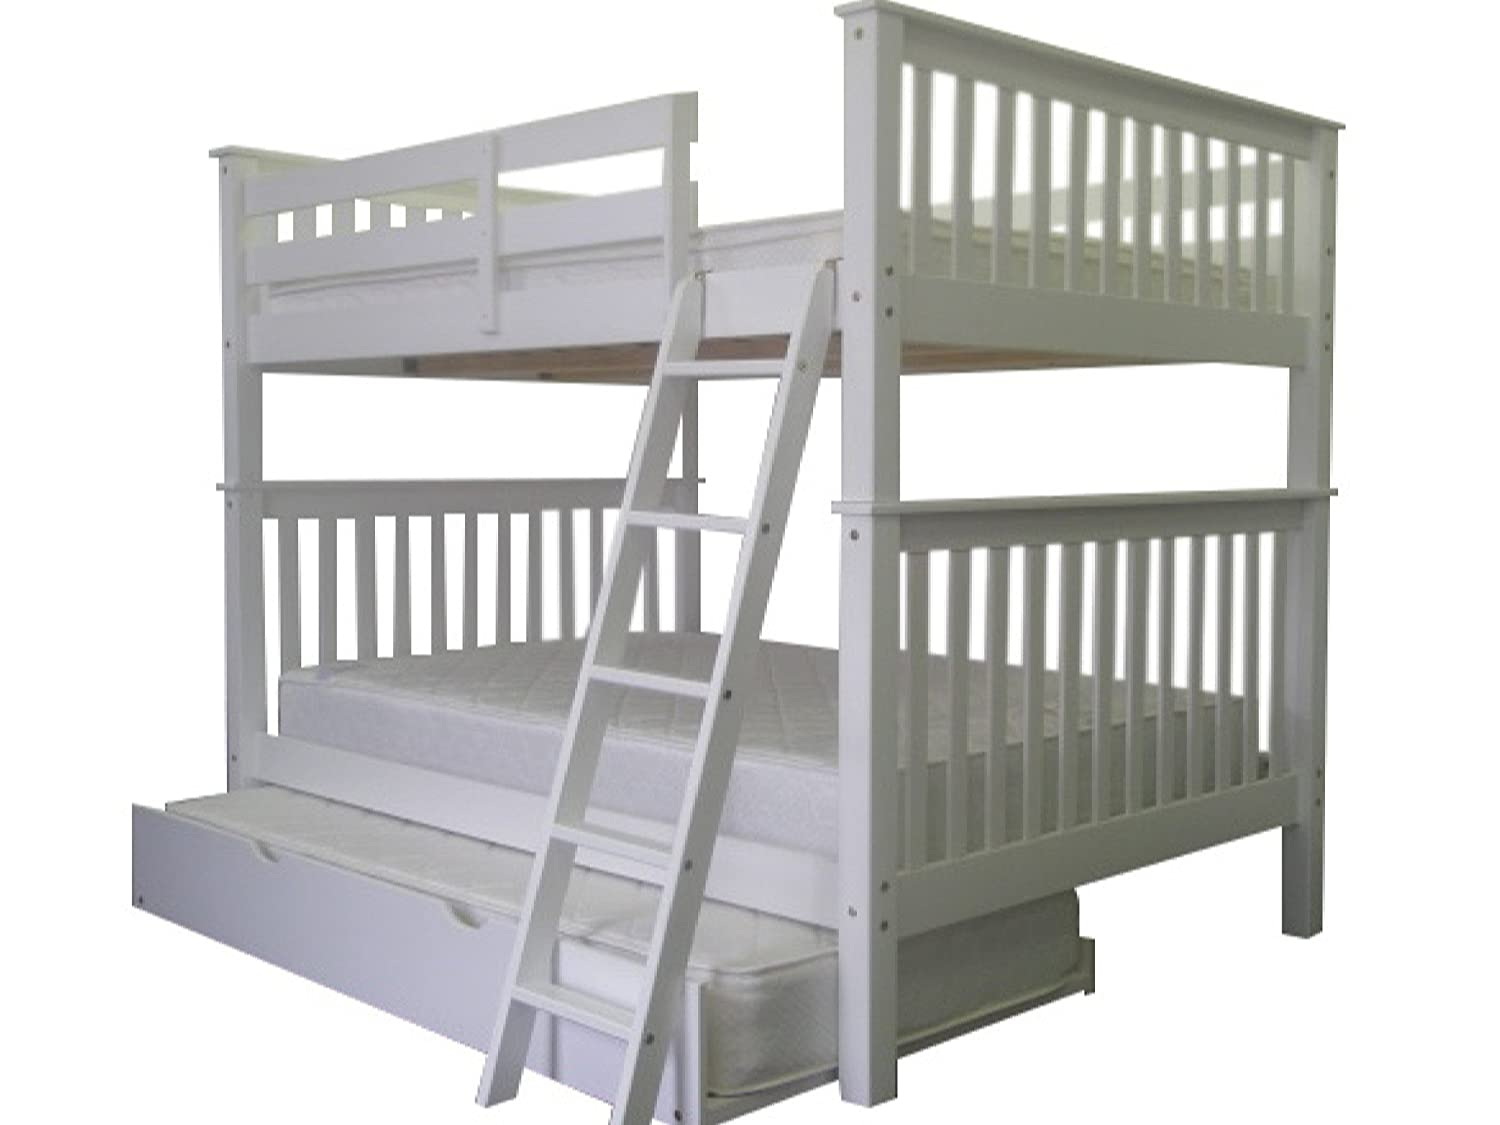 amazoncom bedz king bunk bed with twin trundle full over full mission style white kitchen u0026 dining